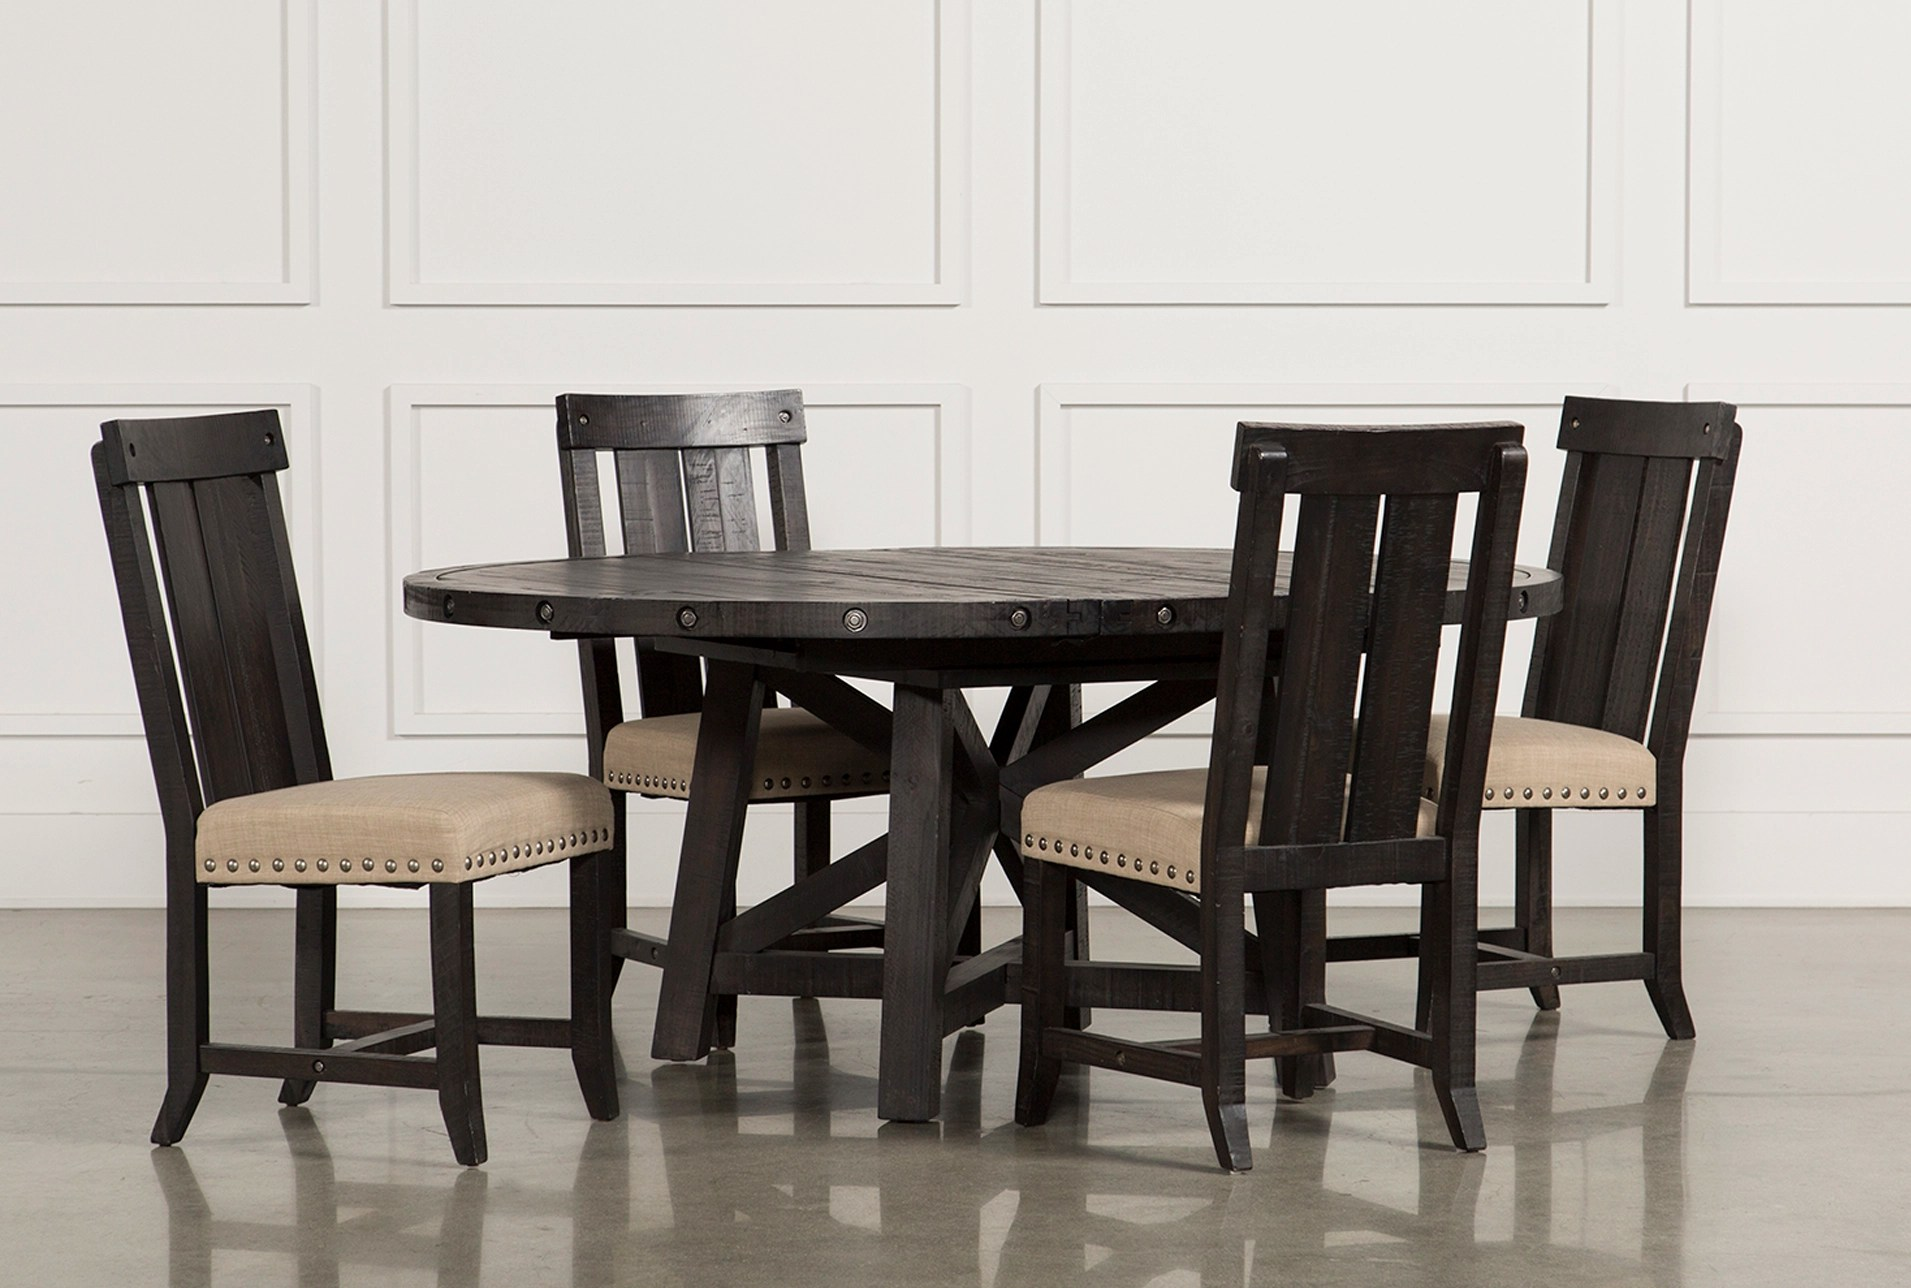 chairs dining table clear for wedding jaxon 5 piece extension round set w wood living spaces qty 1 has been successfully added to your cart